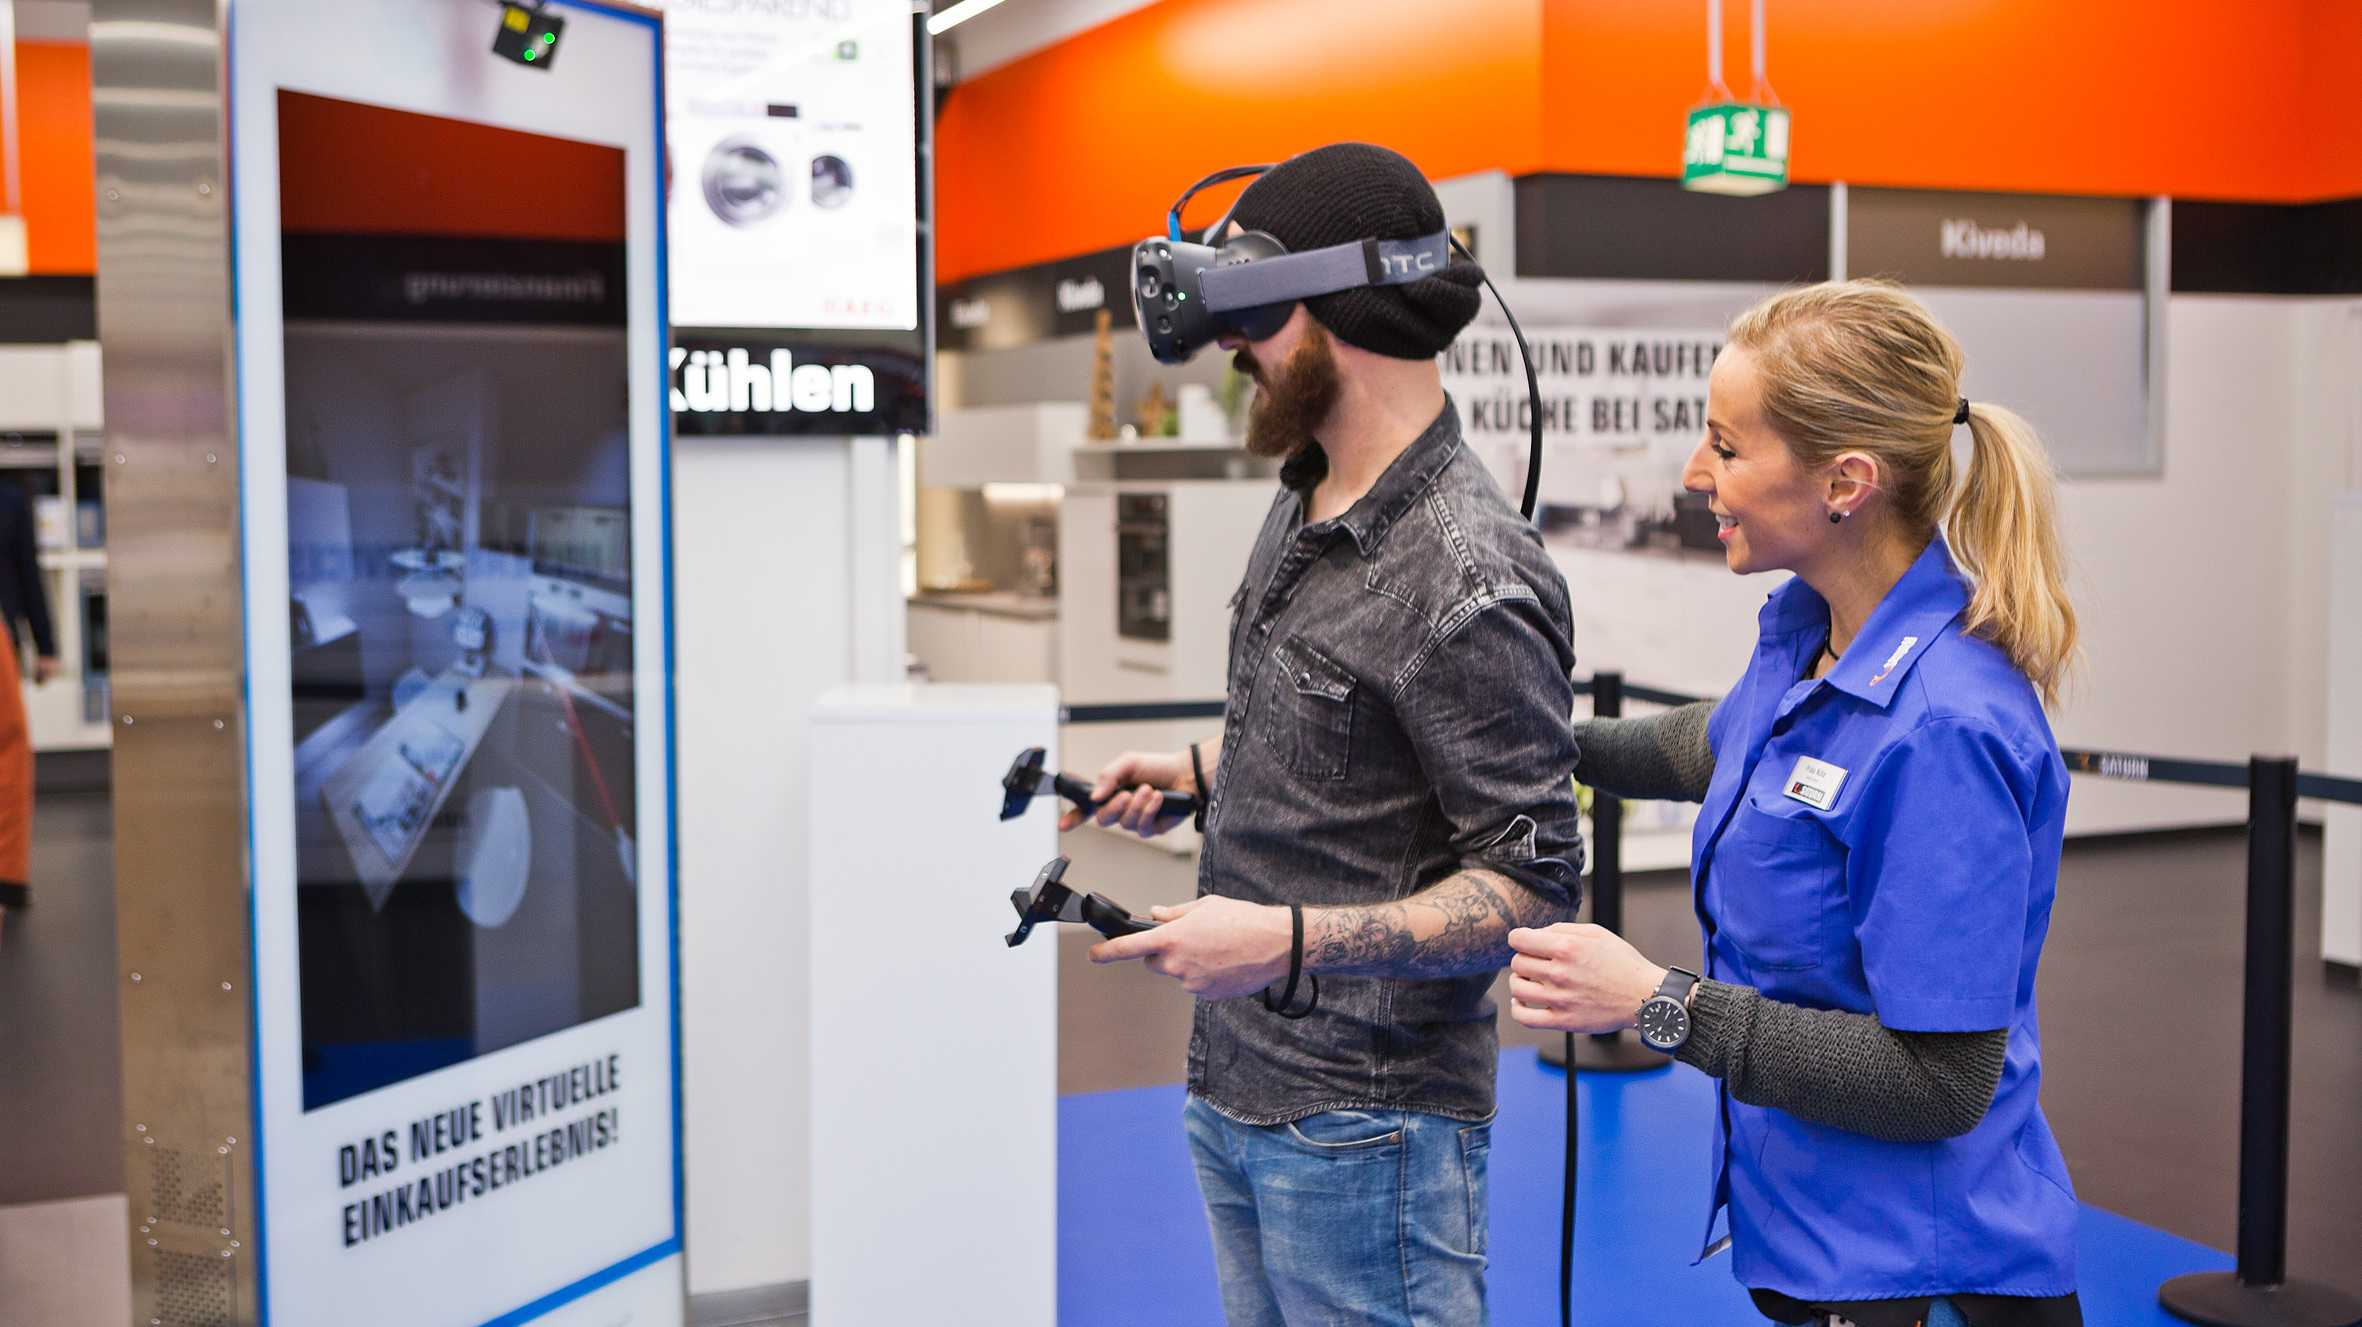 Media-Saturn testet Virtual Reality bei der Küchenplanung